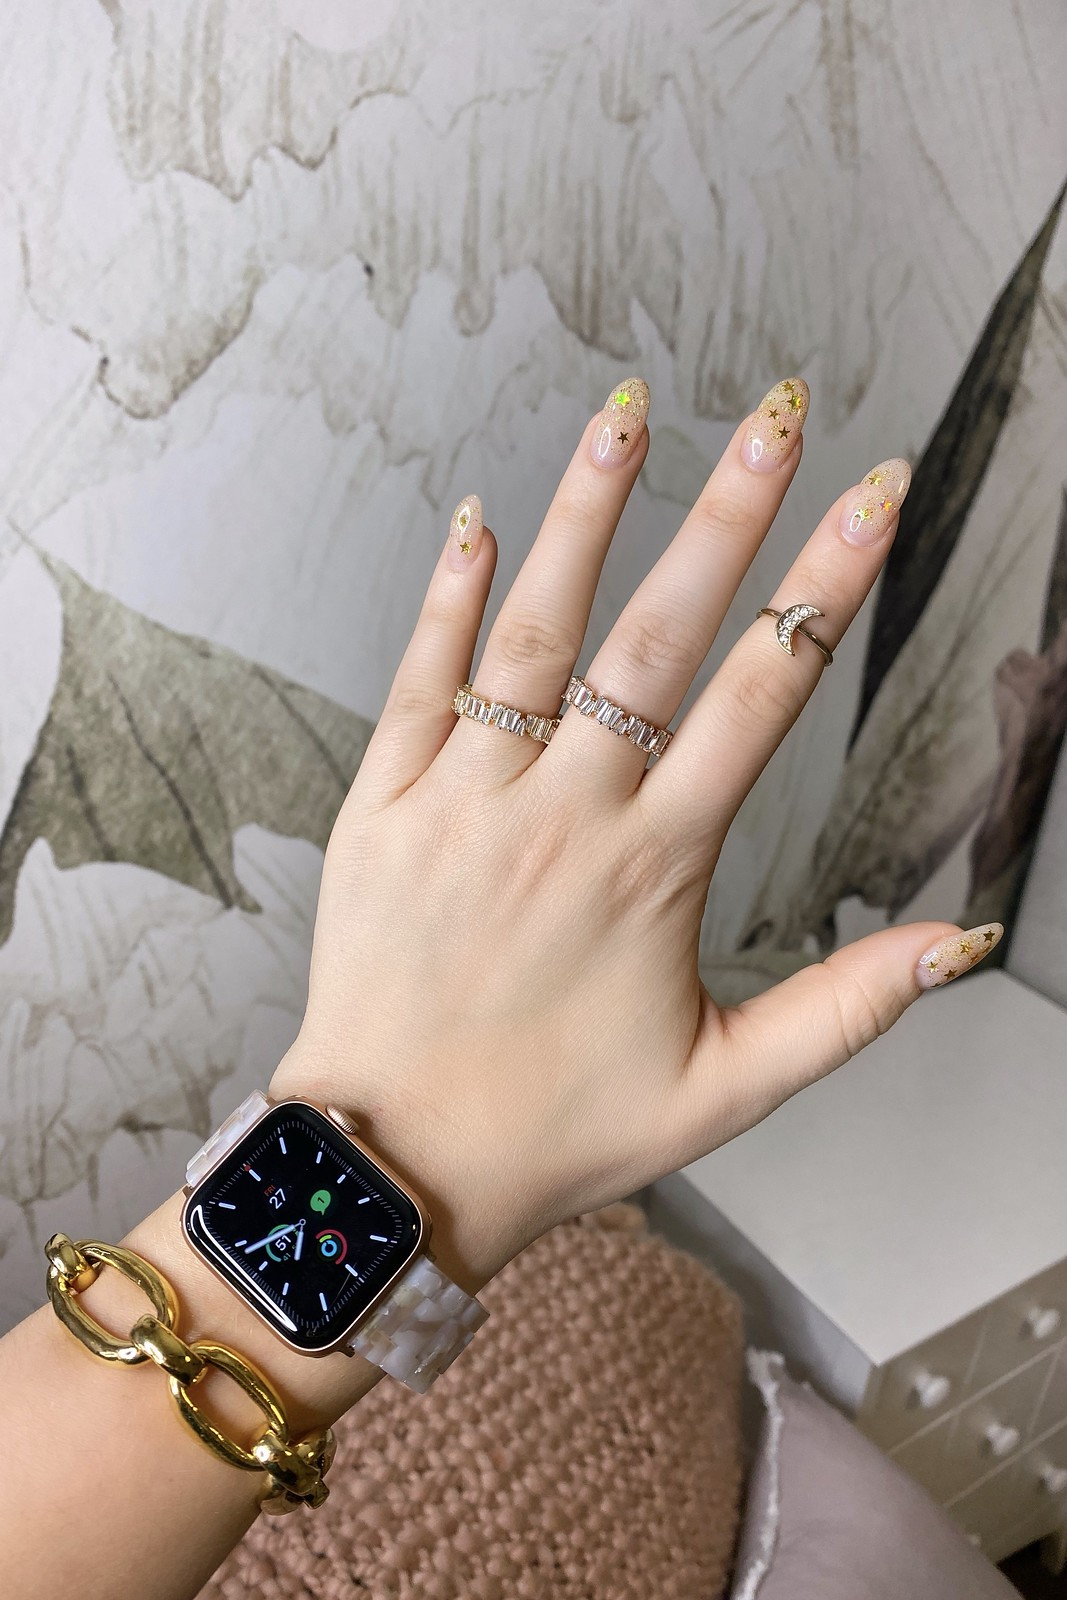 Gold Glitter Star Nails | Manicure of the Month | January Nail Art | Glitter Nail Inspiration | Almond Shaped Nails | UV Gel Nails